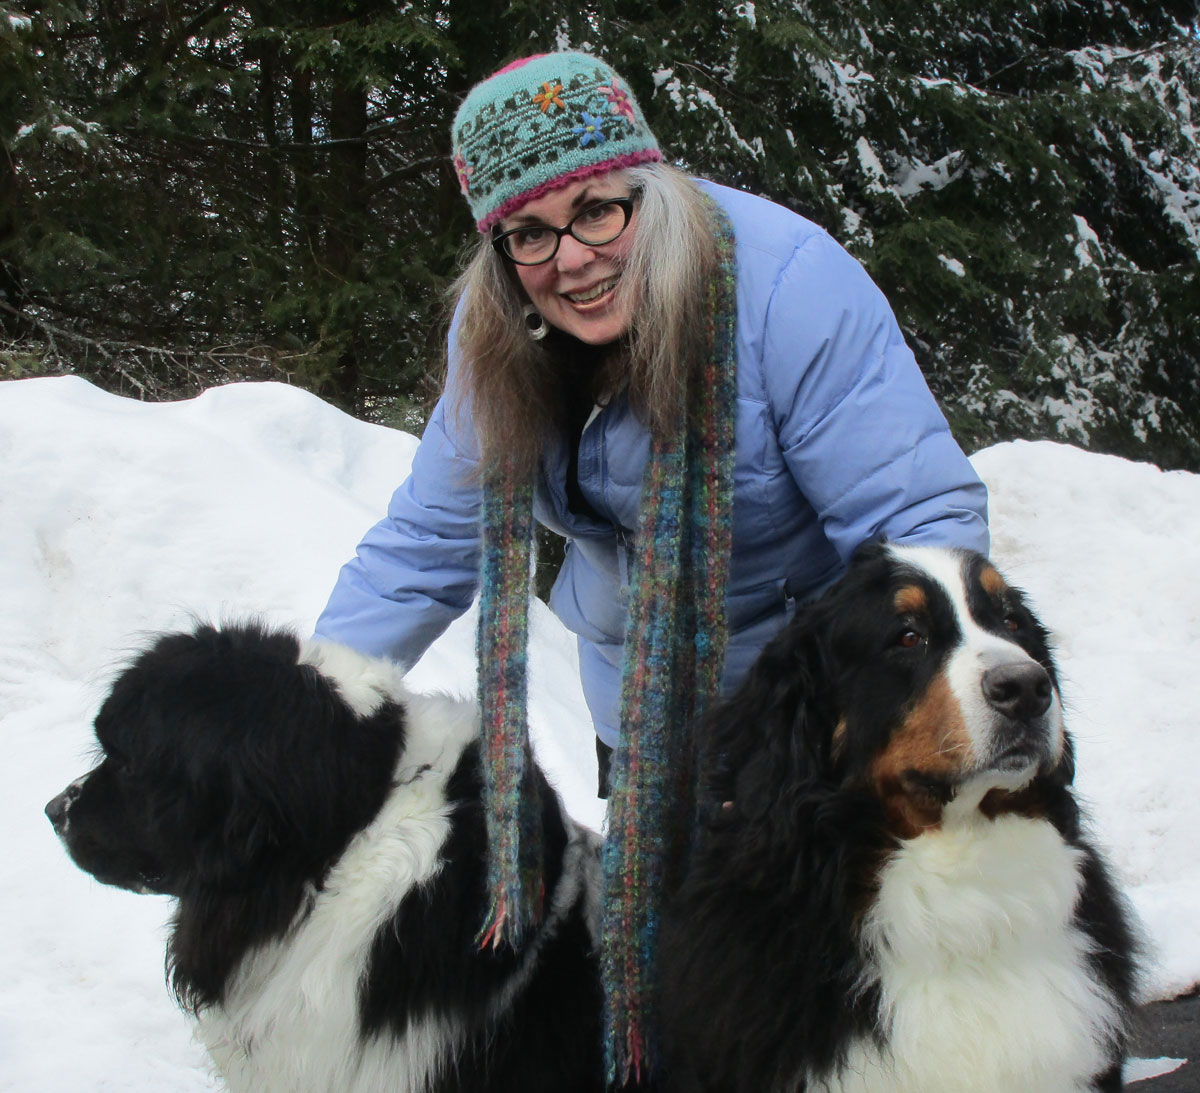 Gwendolyn Evans with her Newfoundland and Bernese Mountain Dog